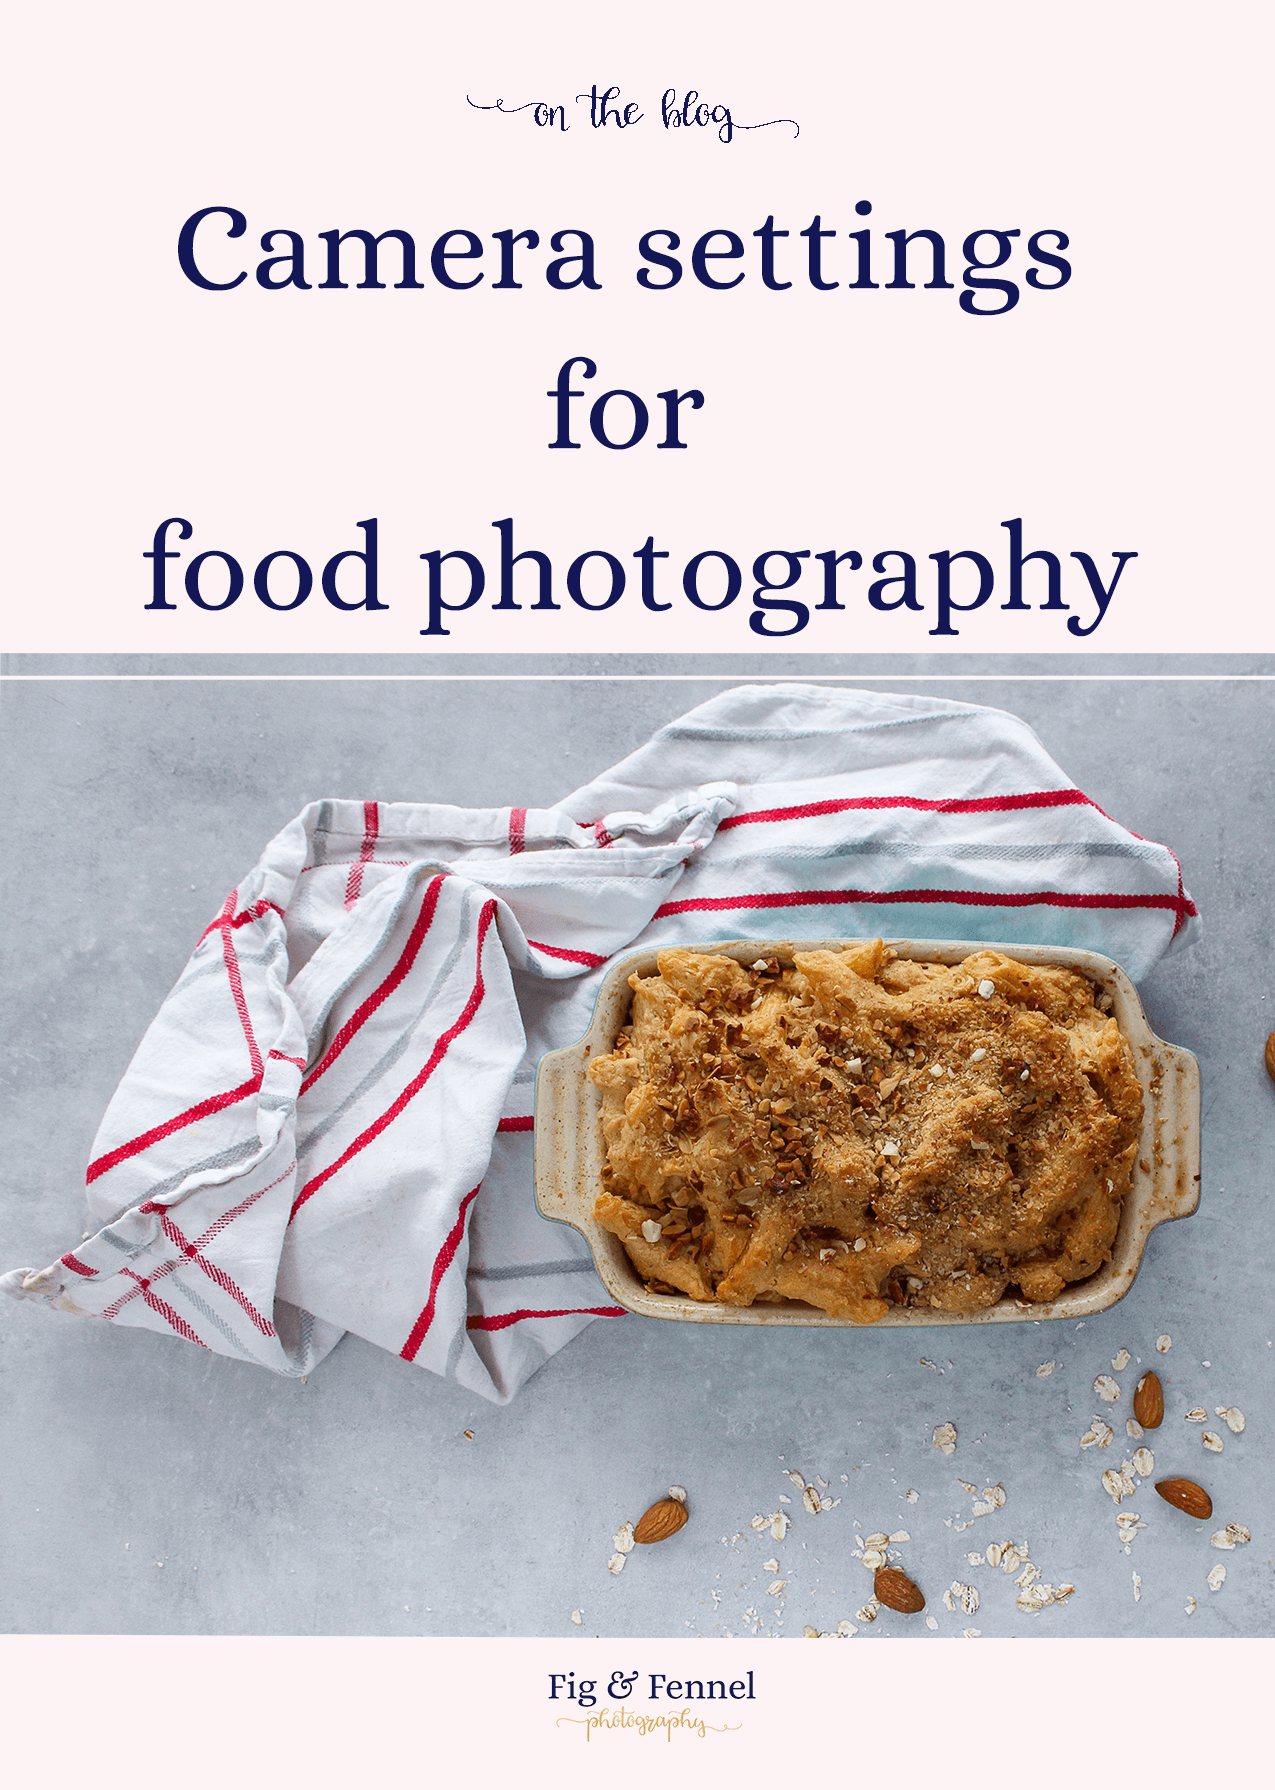 Camera settings for food photography: Start using your camera in manual mode